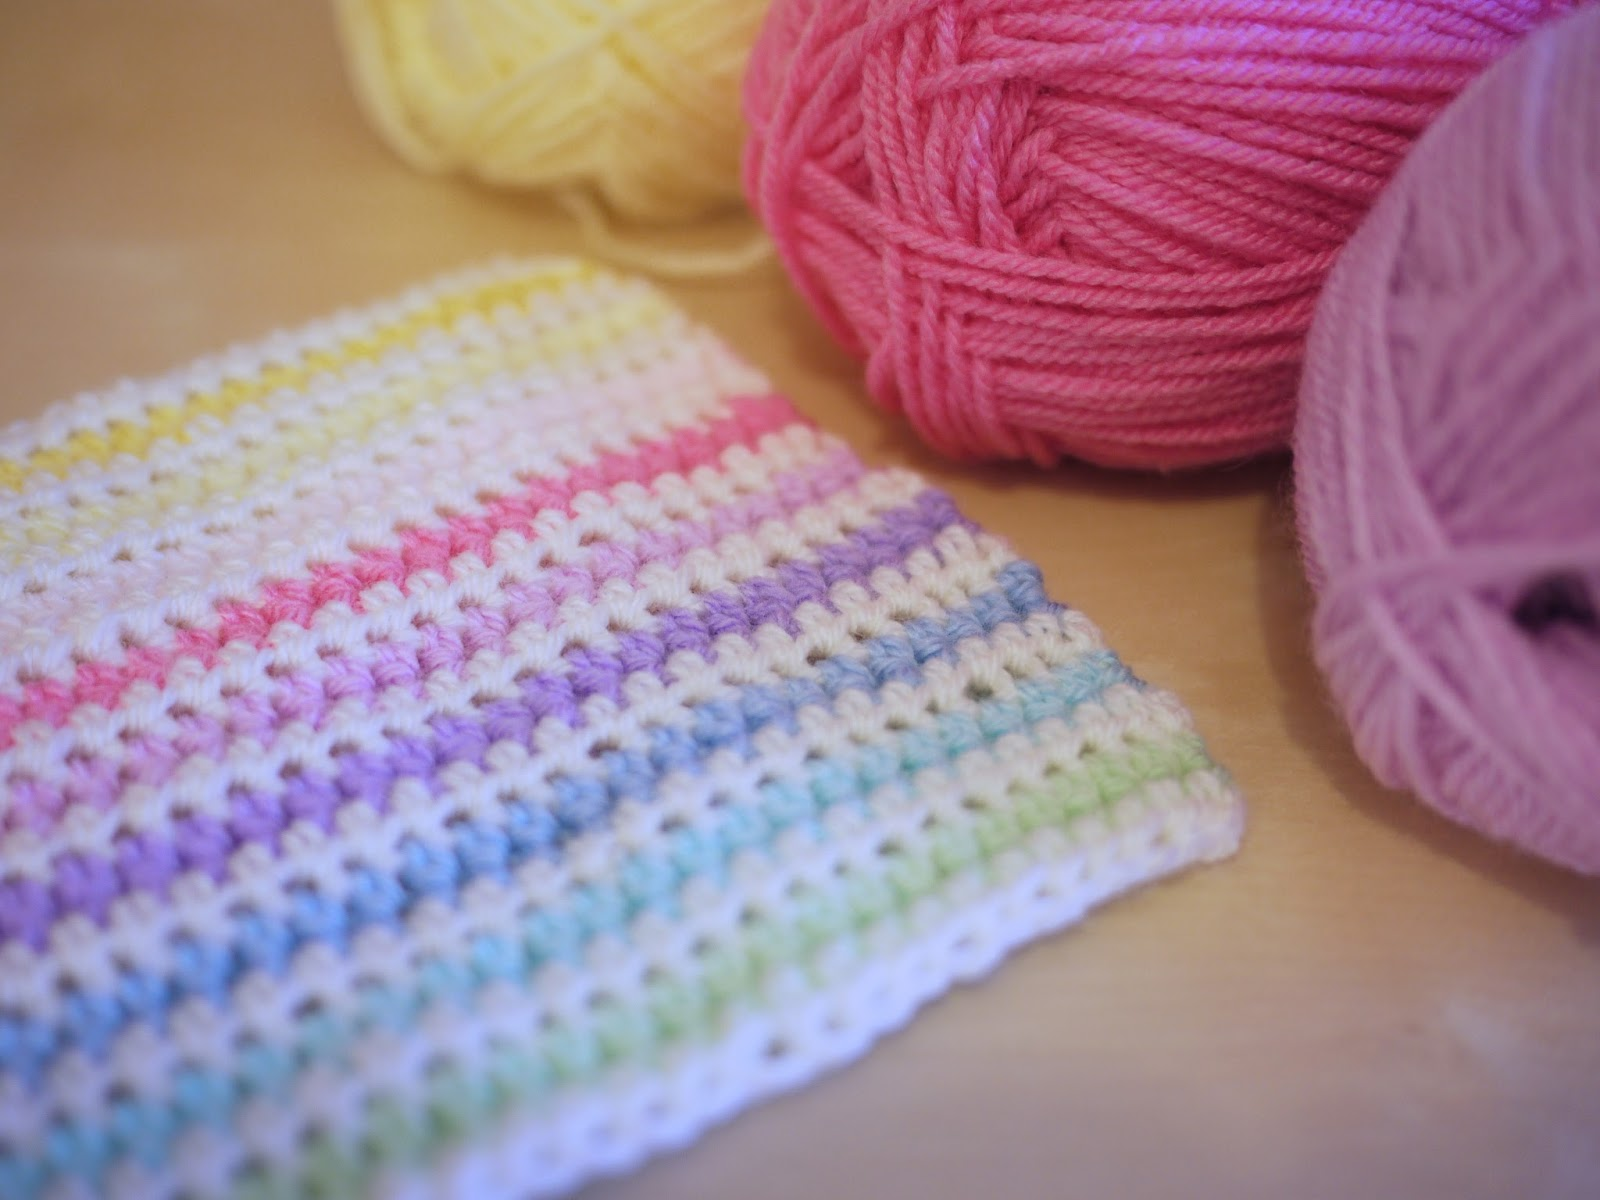 Crochet Stitches Bella Coco : Hi Bellas,